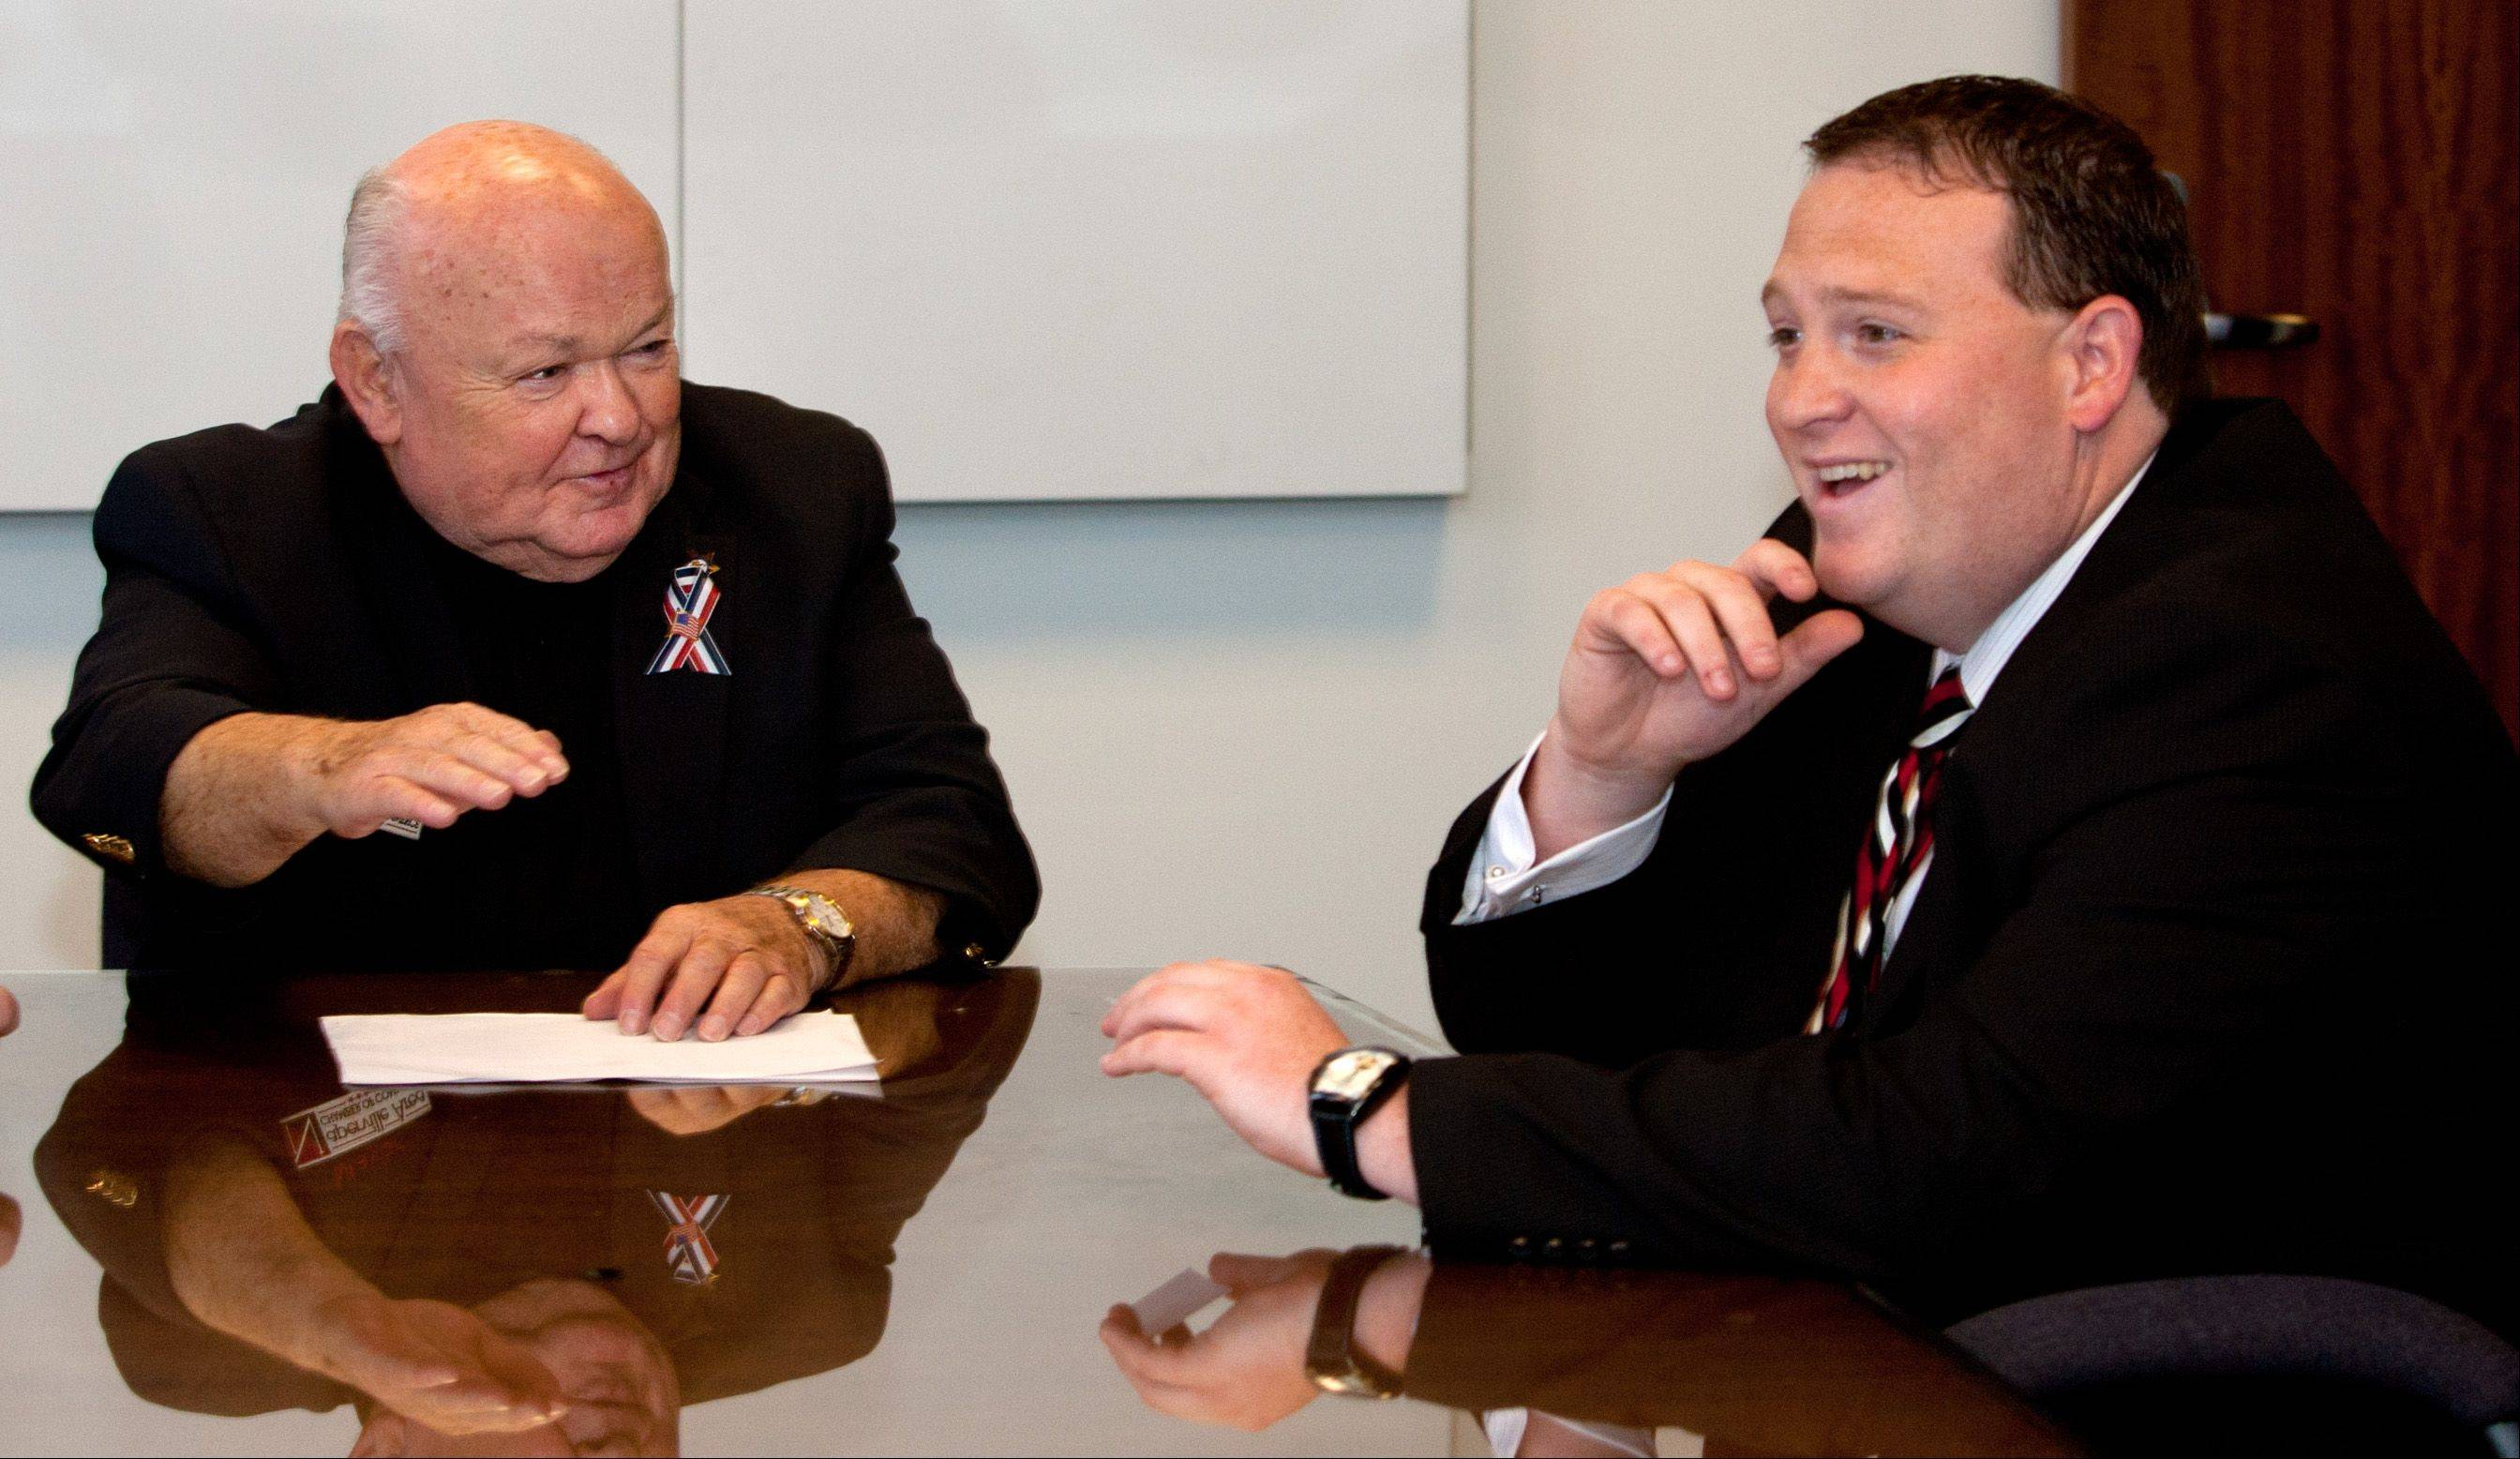 Mike Evans, right, was named Naperville Area Chamber of Commerce president and CEO Tuesday. His first stop was to meet Mayor George Pradel.